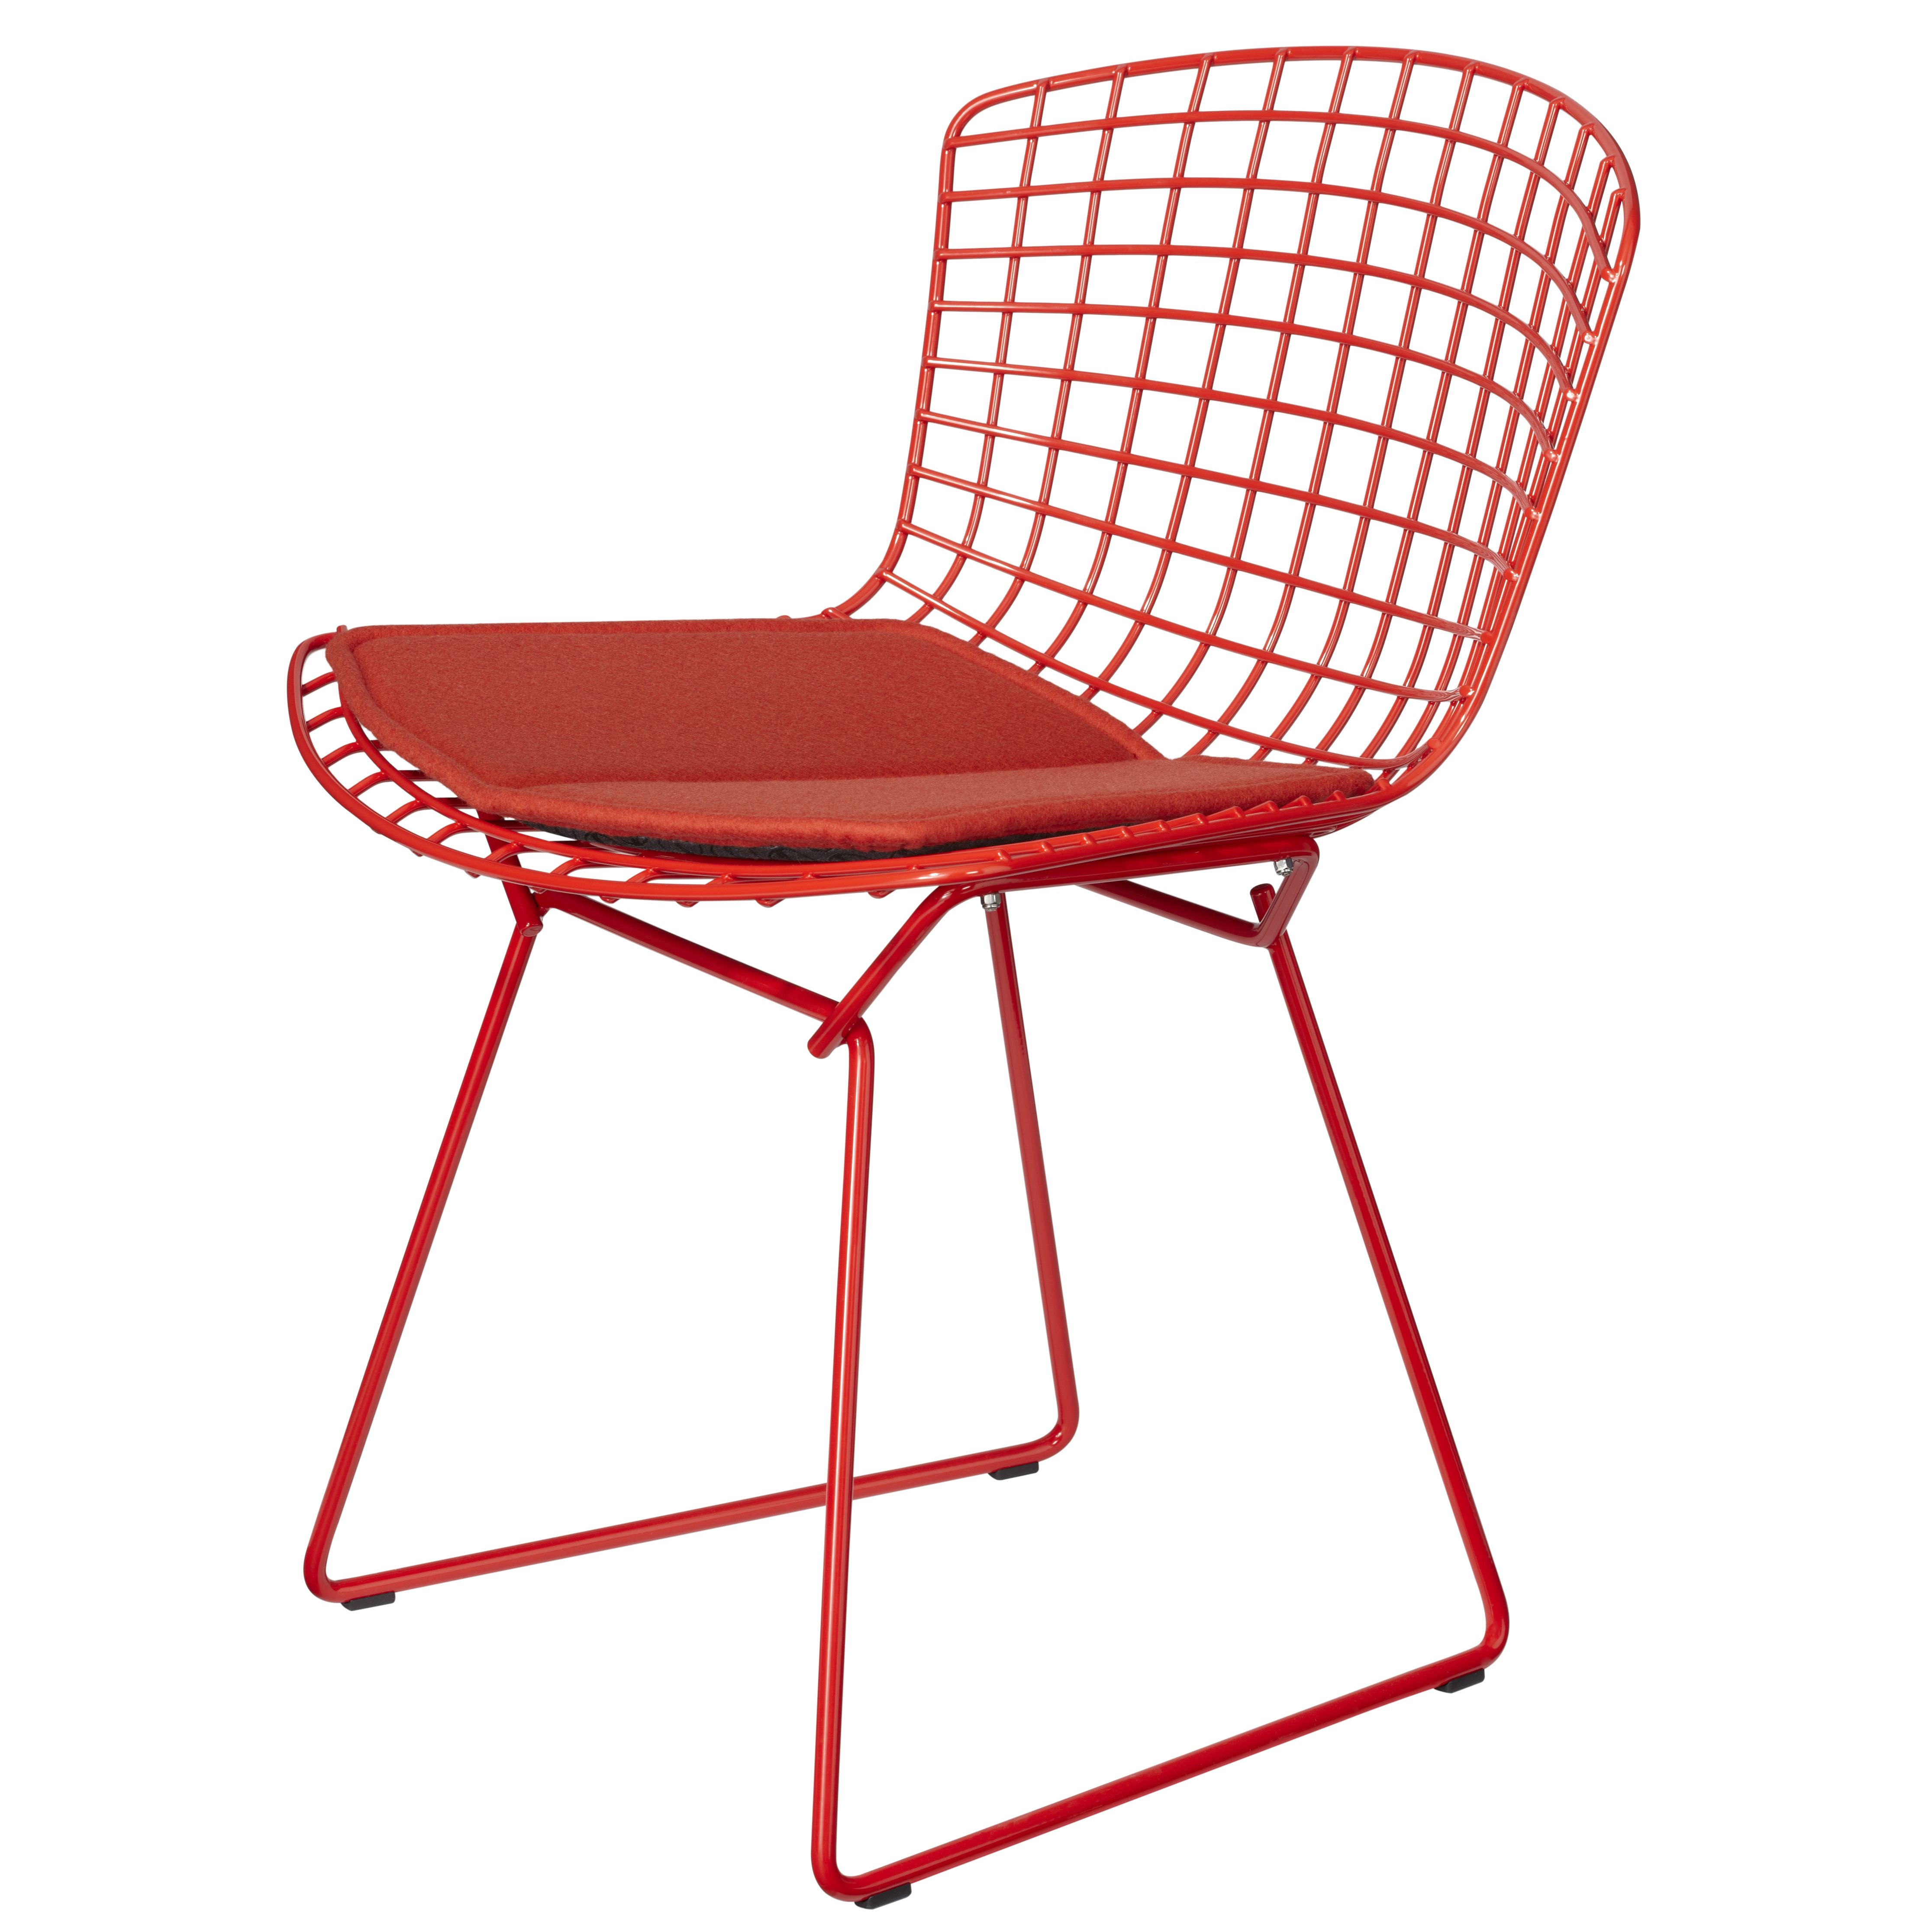 Red Bertoia Chair By Harry Bertoia, 1950. Produced Knoll